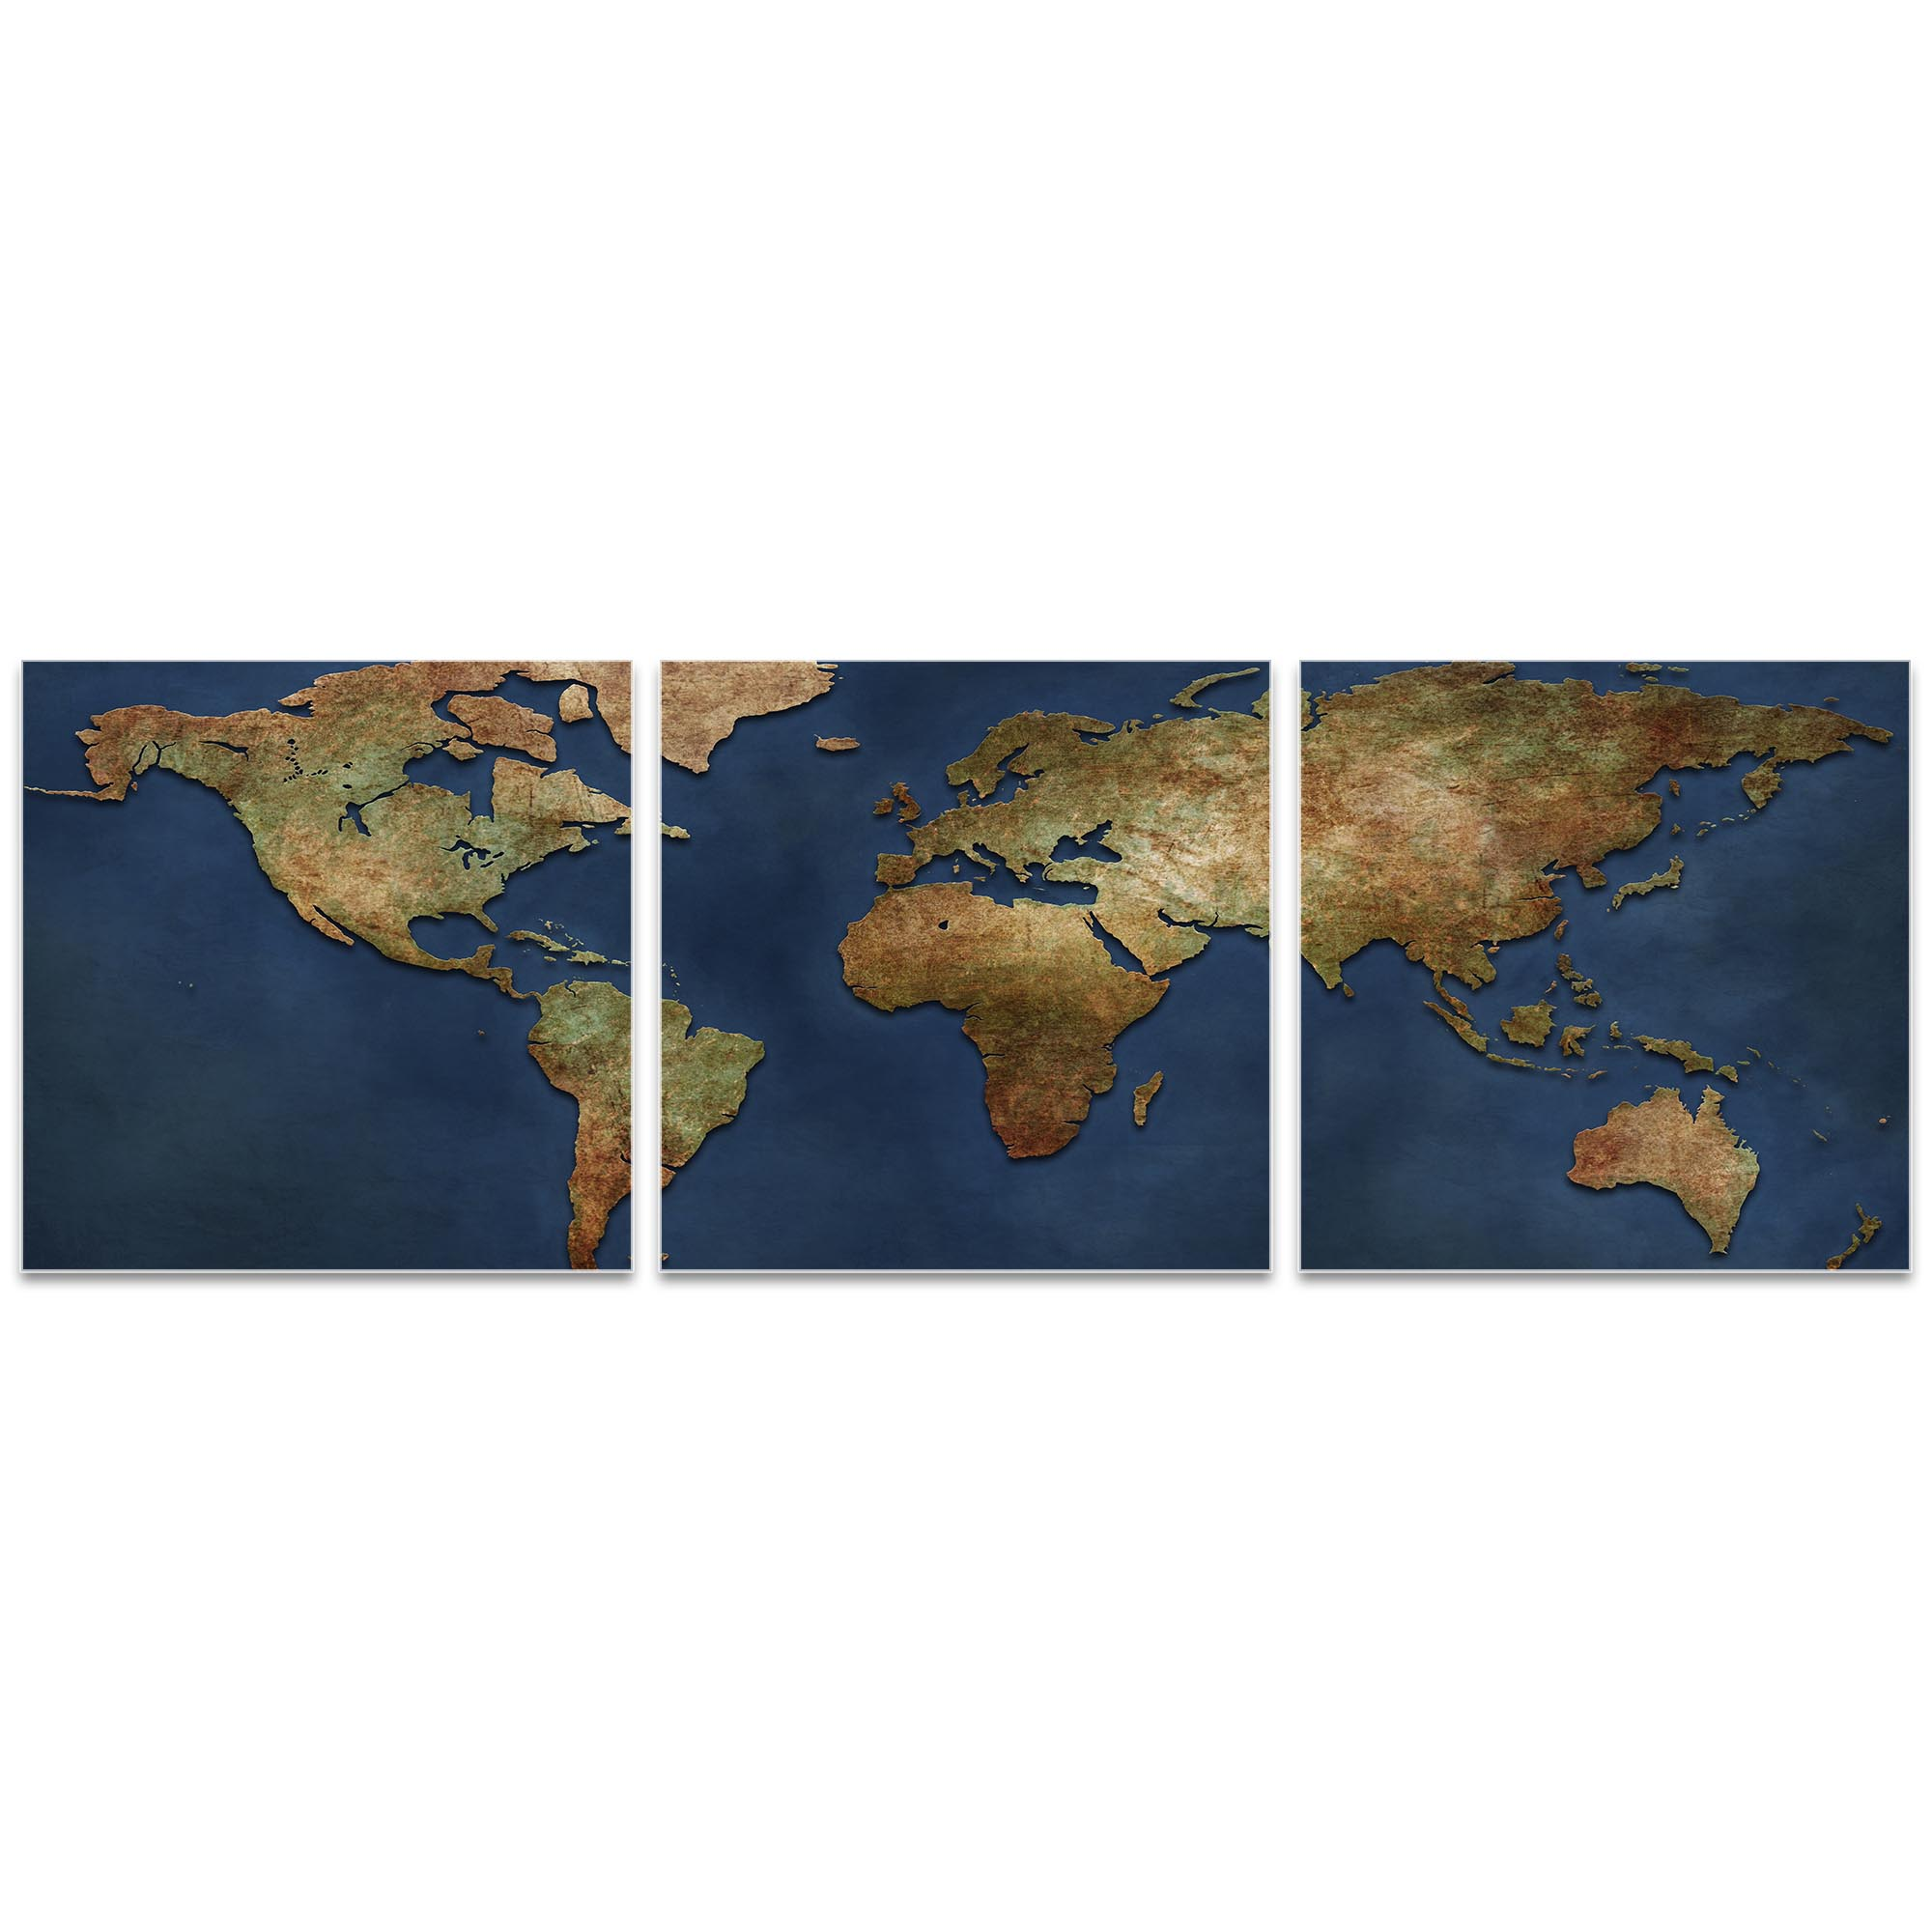 1800s World Map Triptych Large 70x22in. Metal or Acrylic Colonial Decor - Image 2